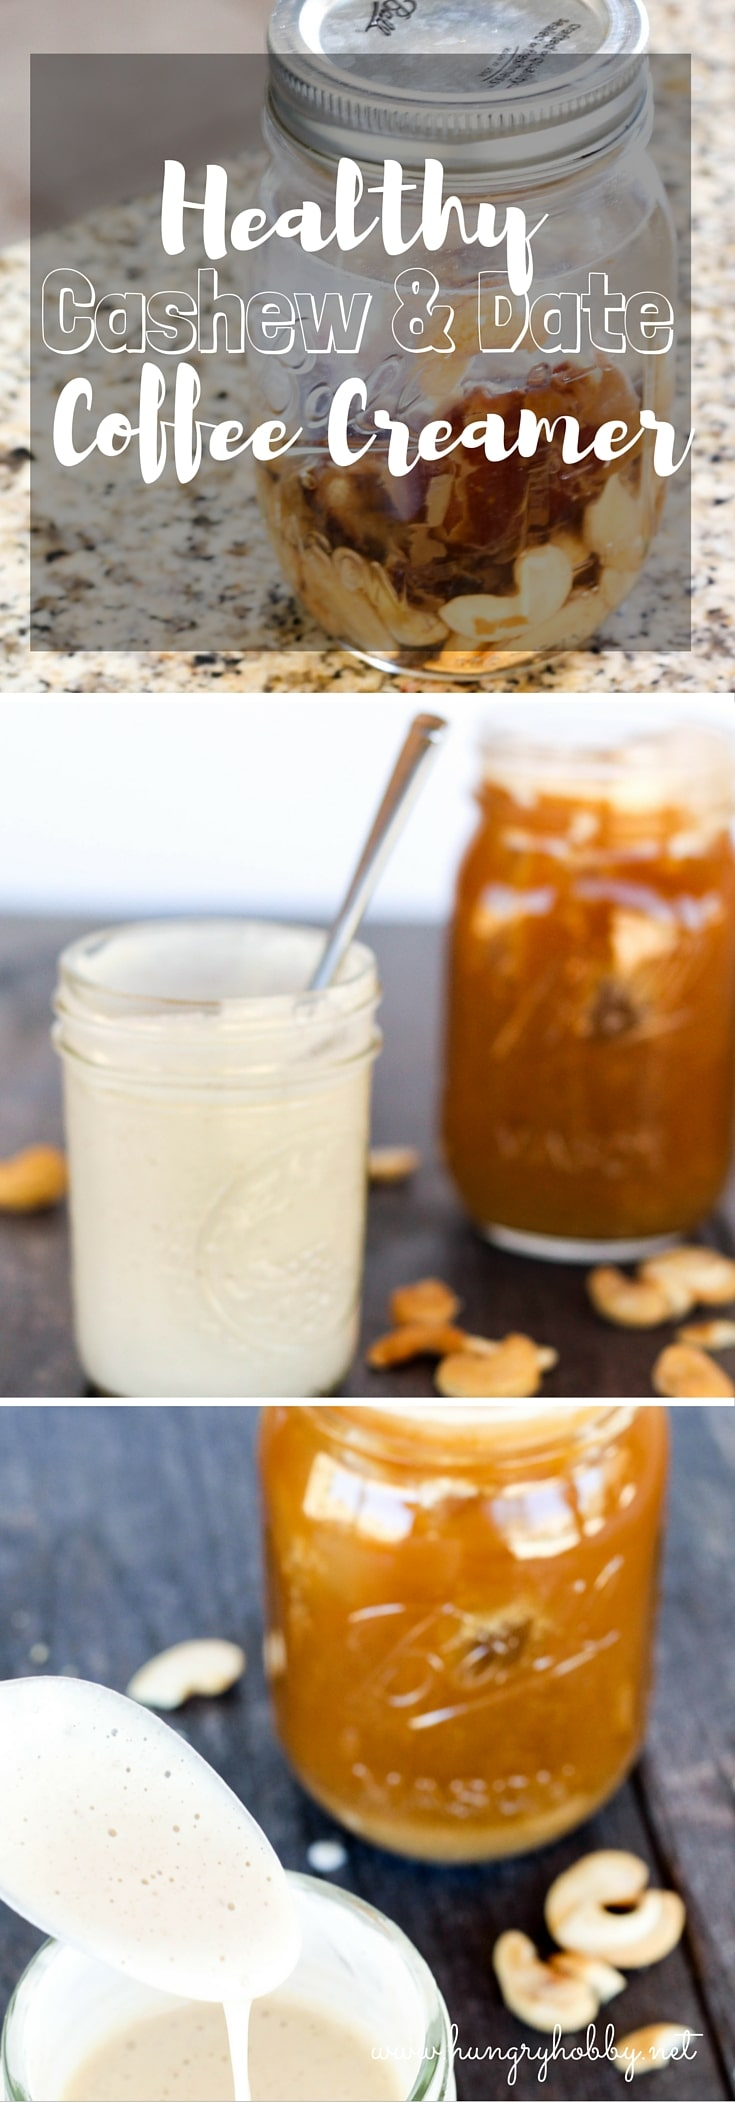 Cashew & Date Healthy Coffee Creamer is so easy to make from just three ingredients and so full of nutrition it can turn your morning cup of joe into a real health food!